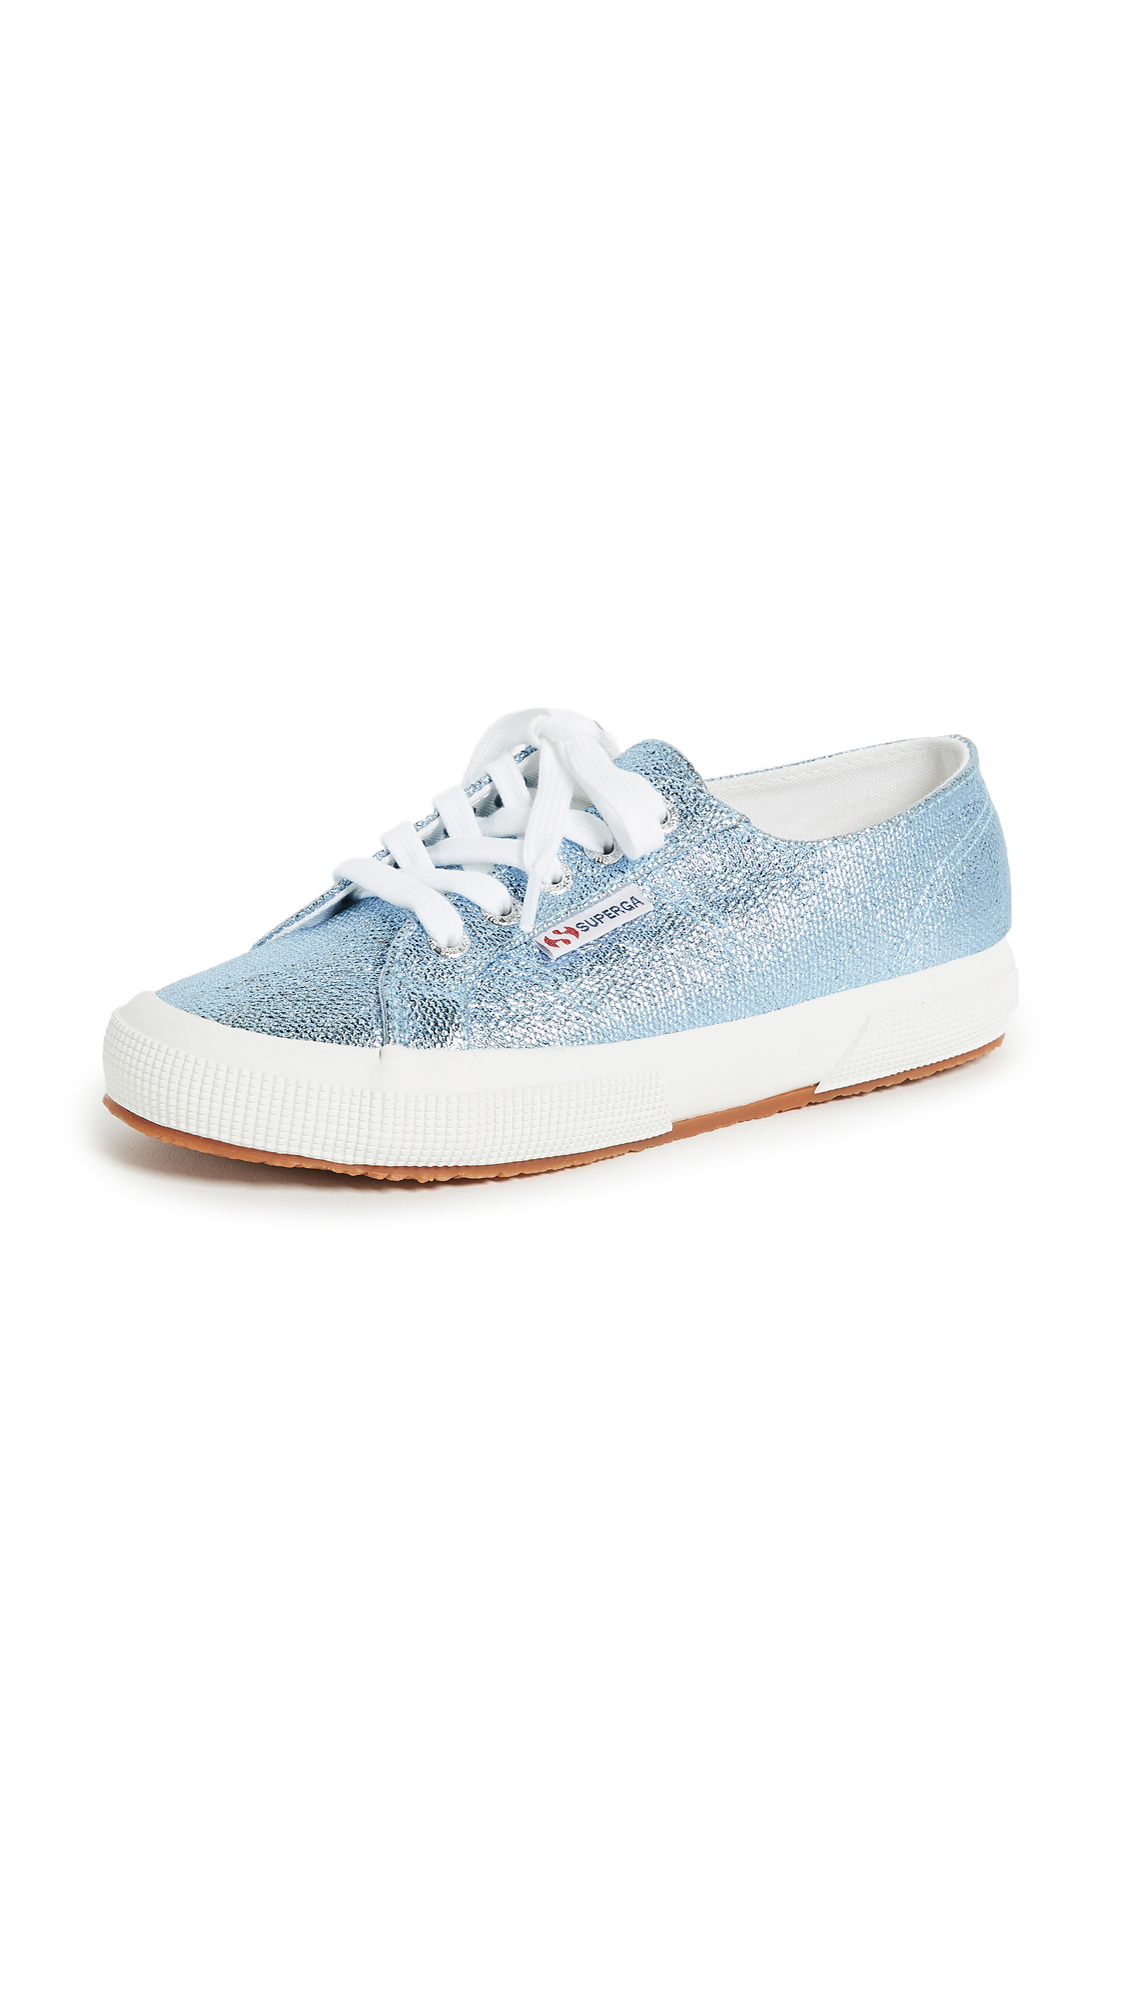 Superga 2750 Metallic Sneakers - Light Blue